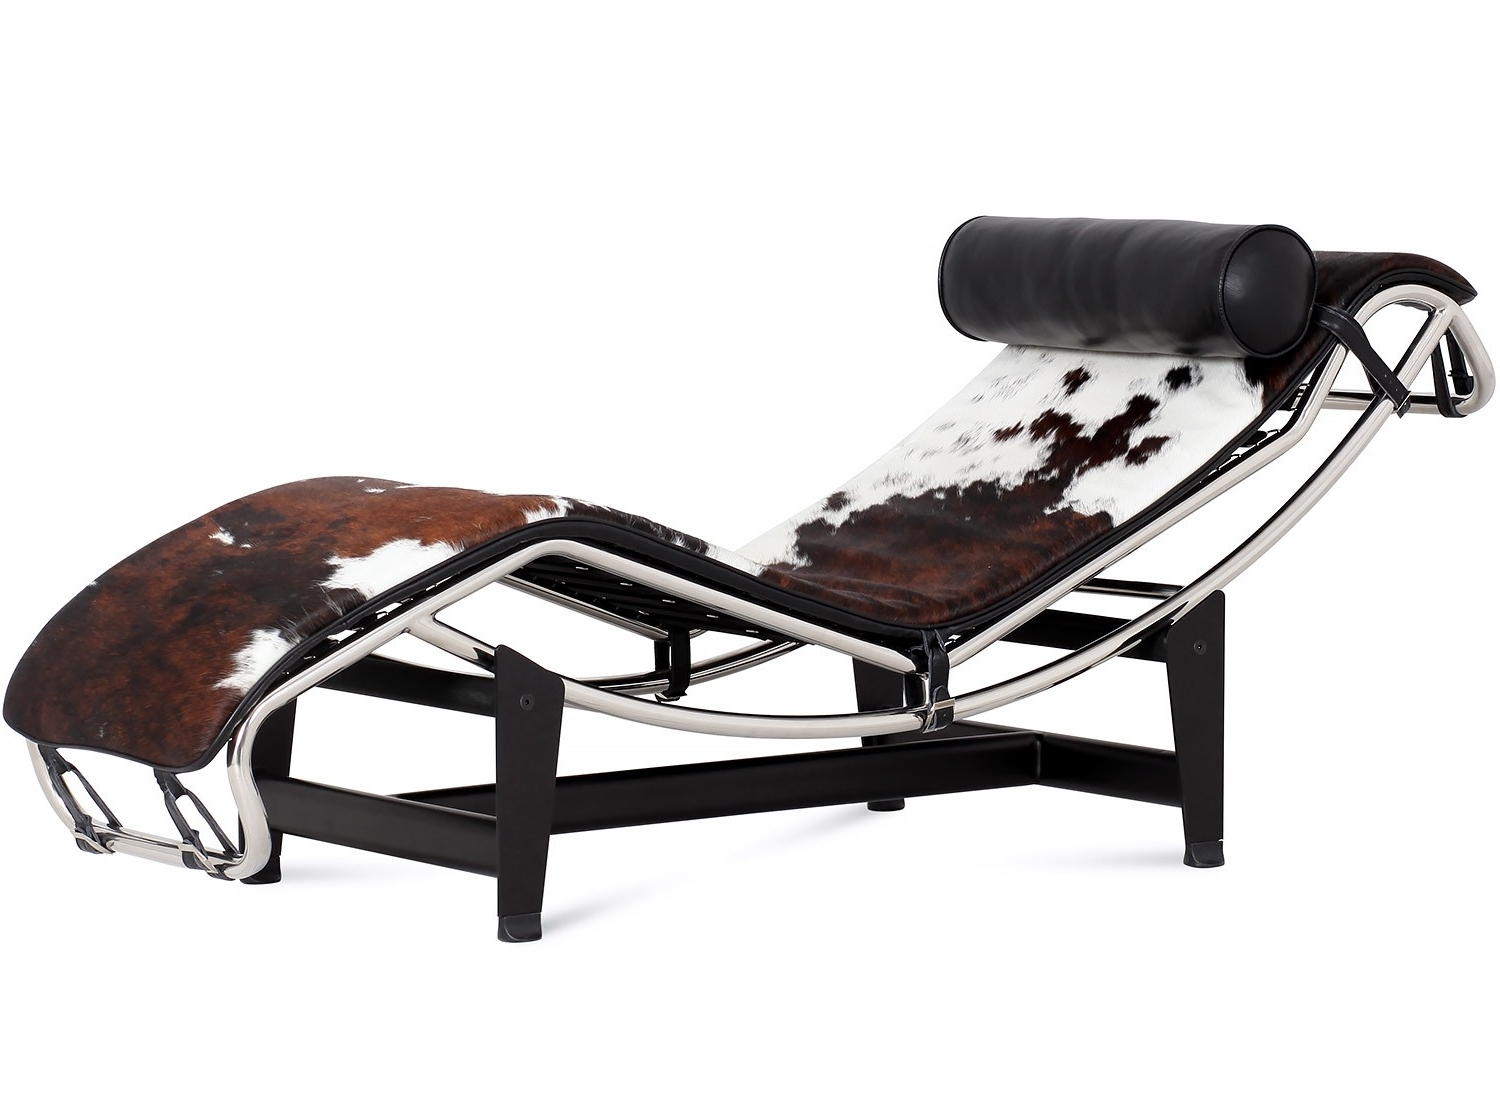 2018 Le Corbusier Lc4 Chaise Longue Cowhide (Platinum Replica) Within Le Corbusier Chaises (View 1 of 15)